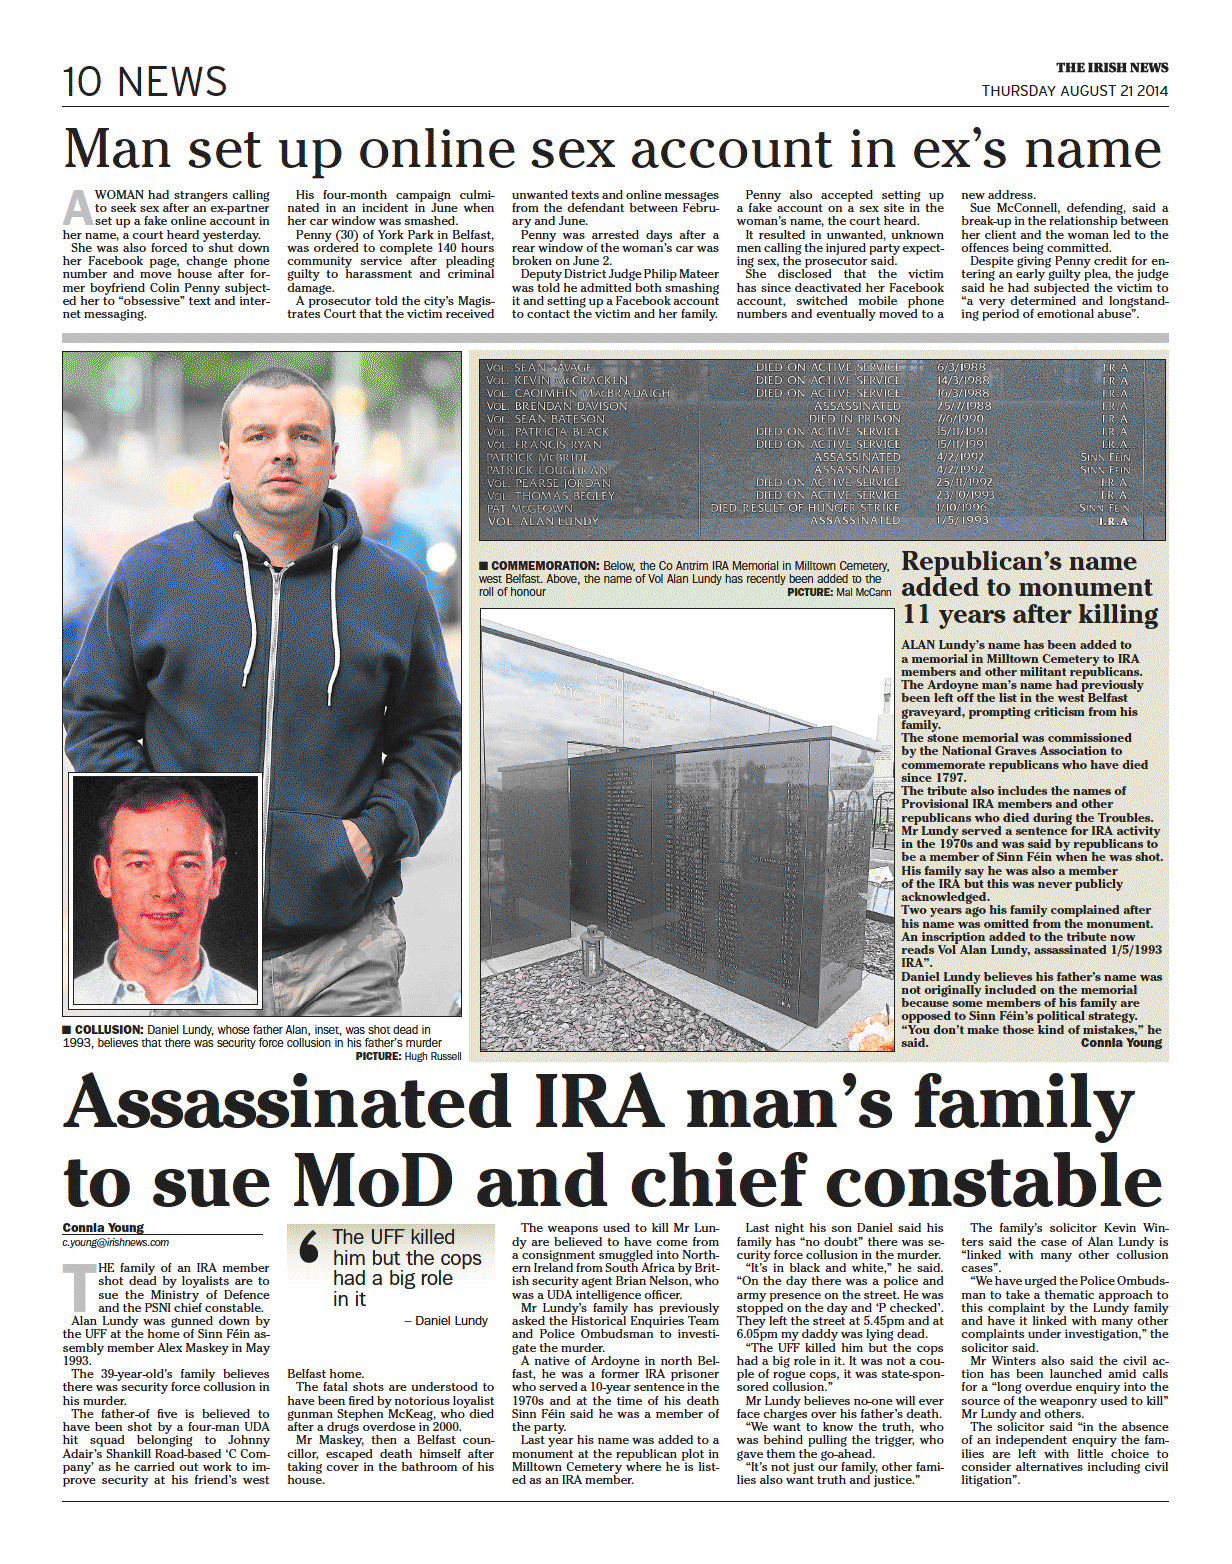 Assassinated IRA man's family to sue MoD and chief constable